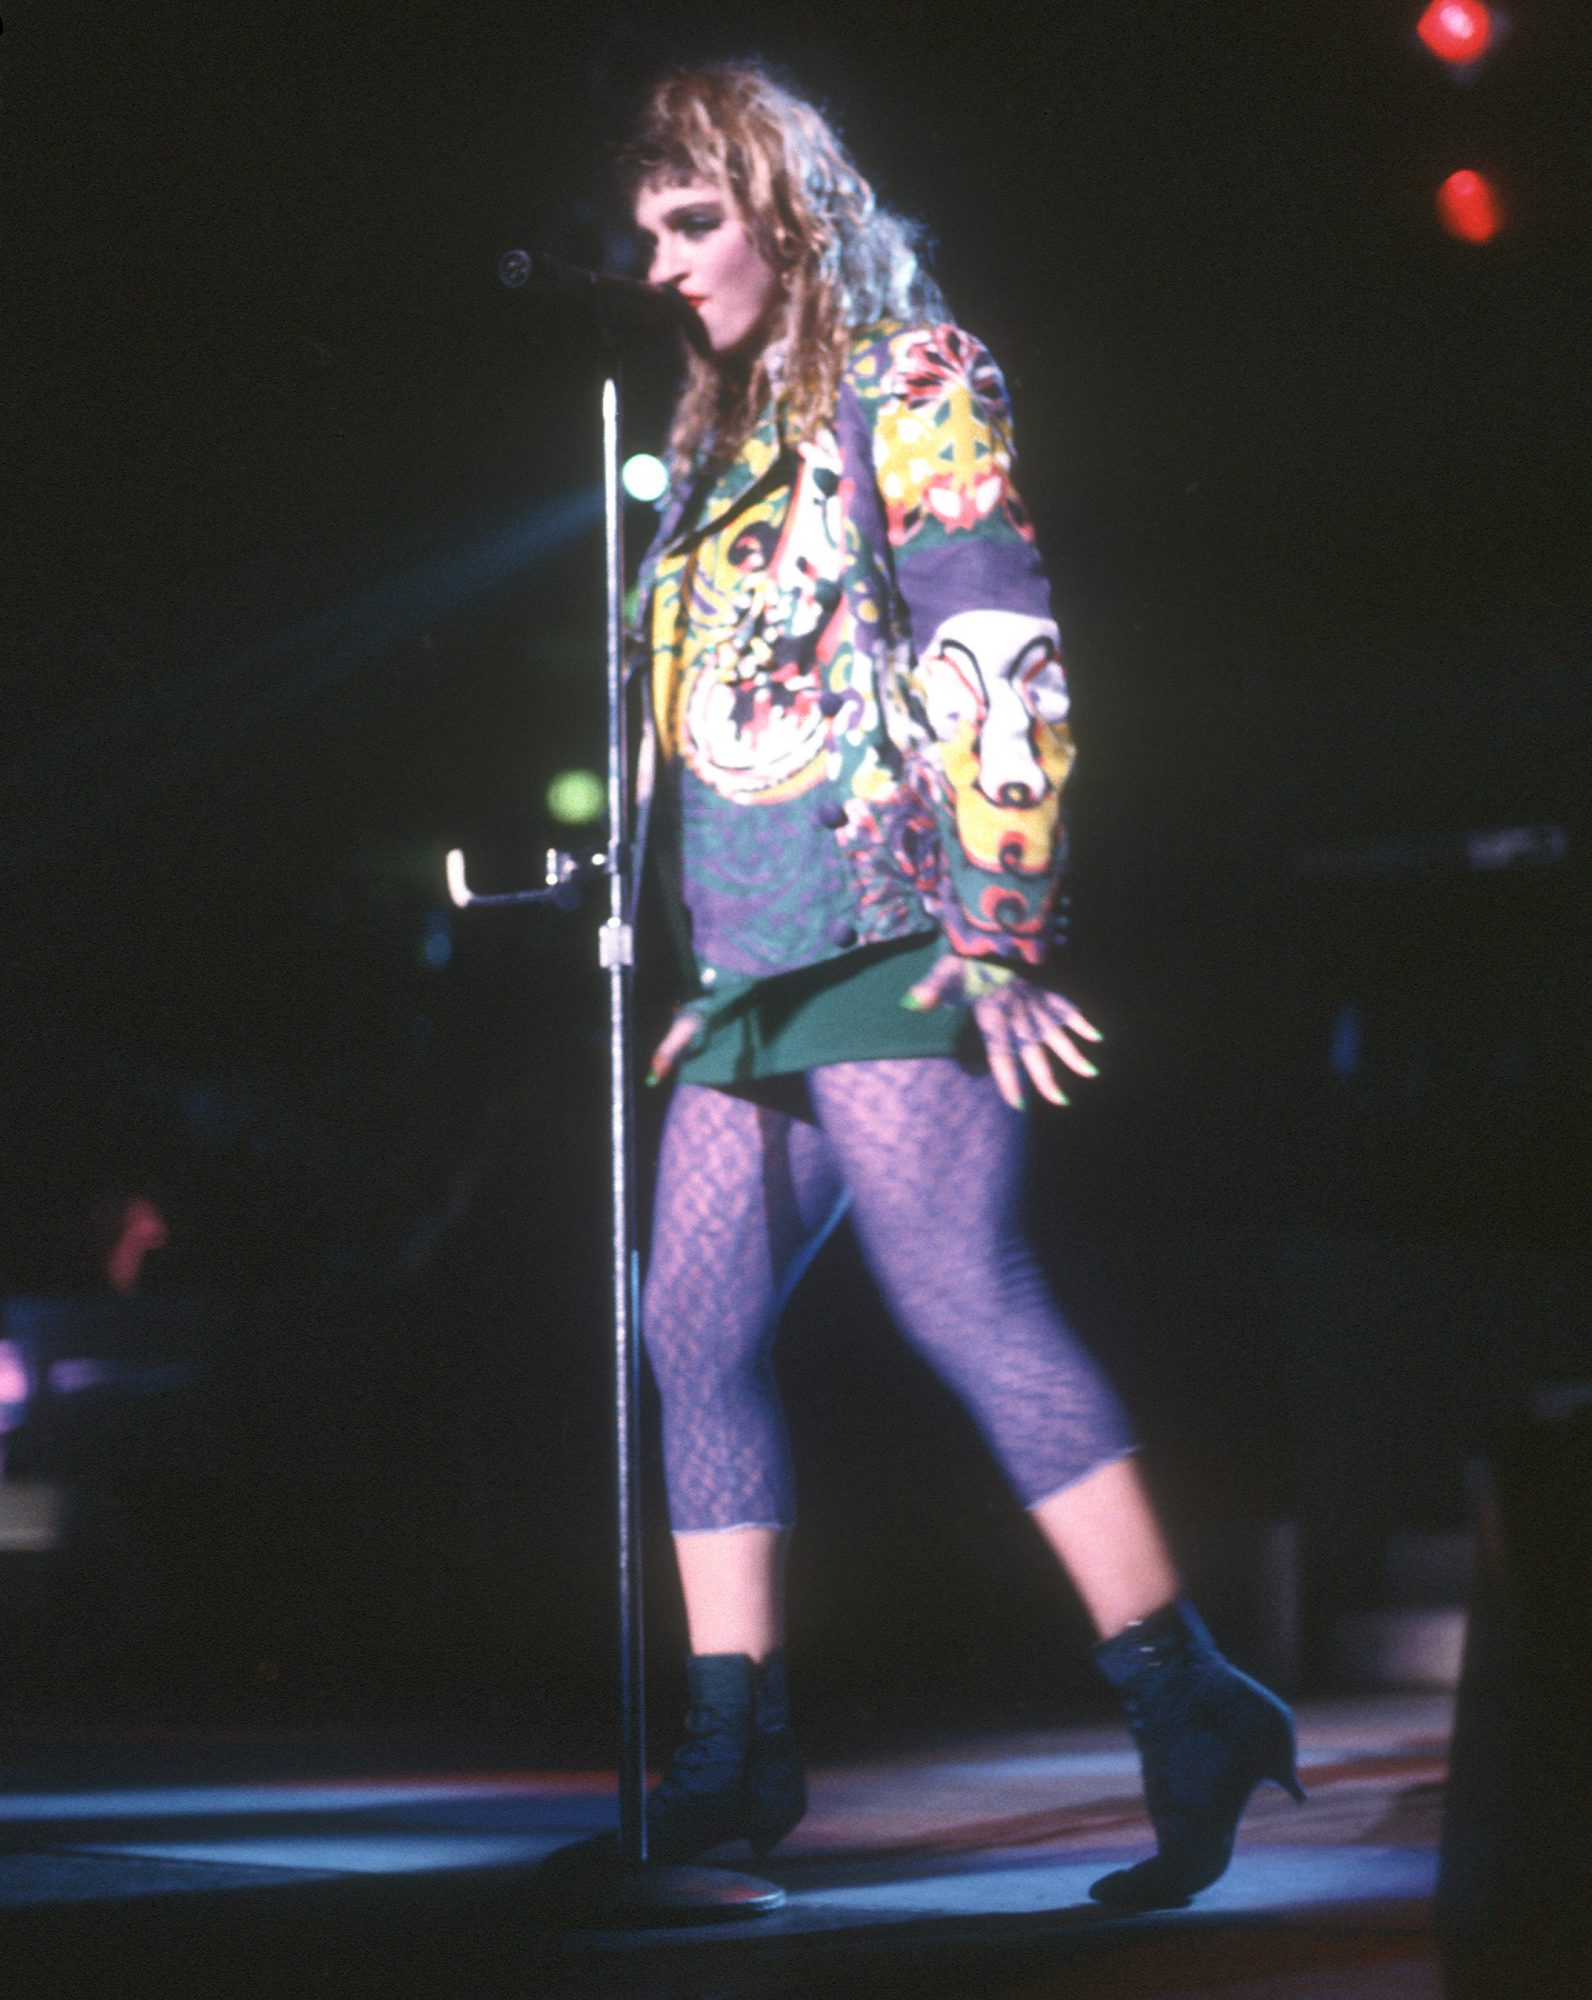 1984: Onstage at Madison Square Garden